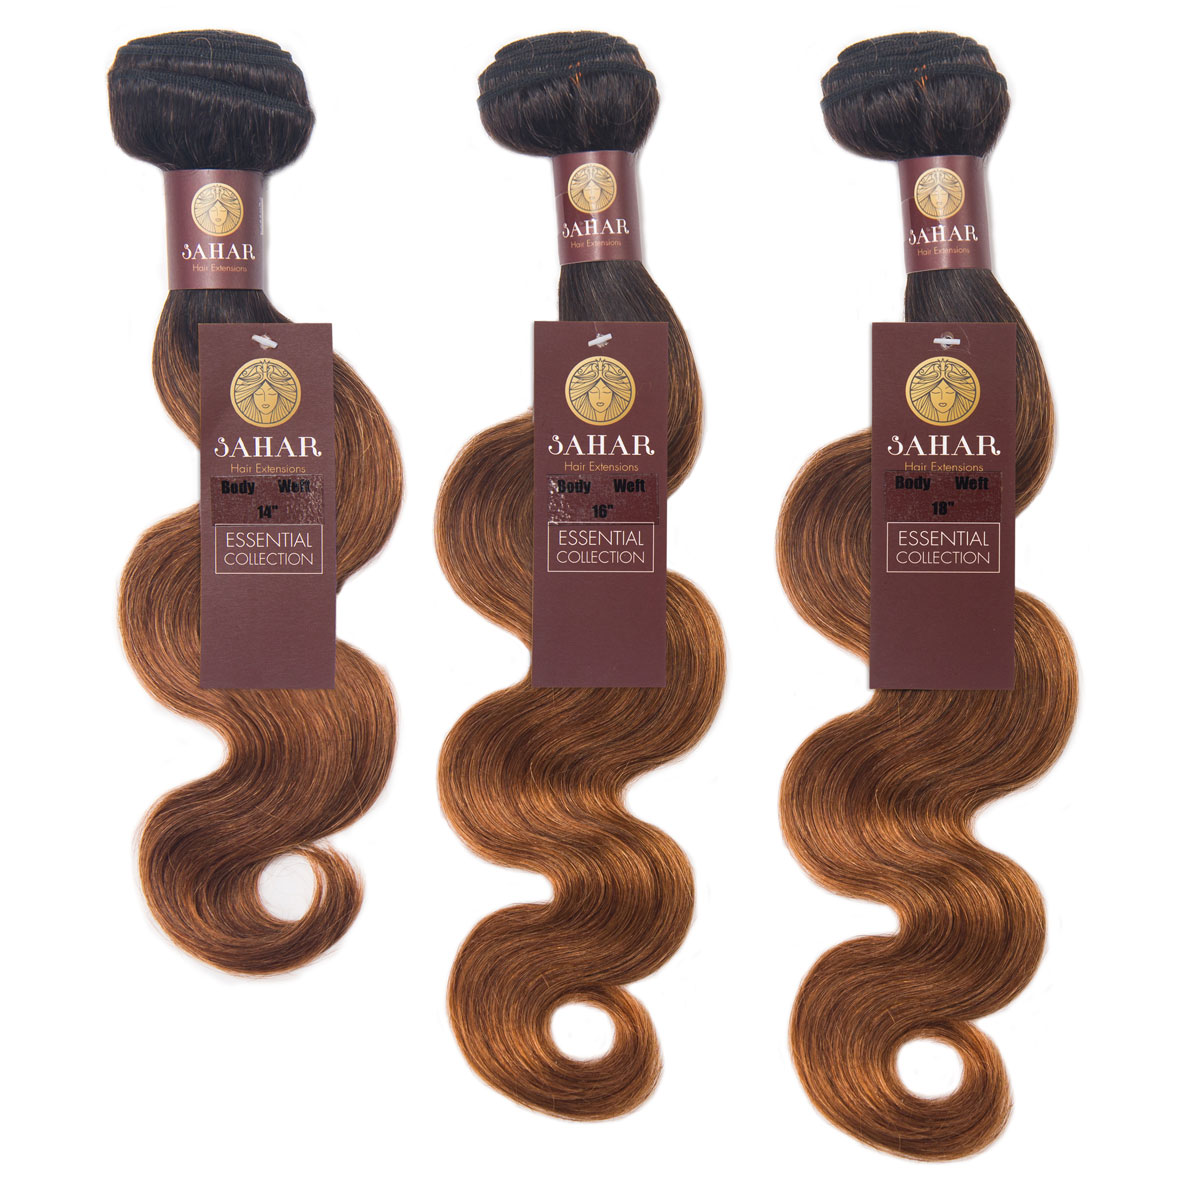 Sahar Essential Virgin Remy Human Hair Extensions Bundle (8A) - #OT30 Body Wave